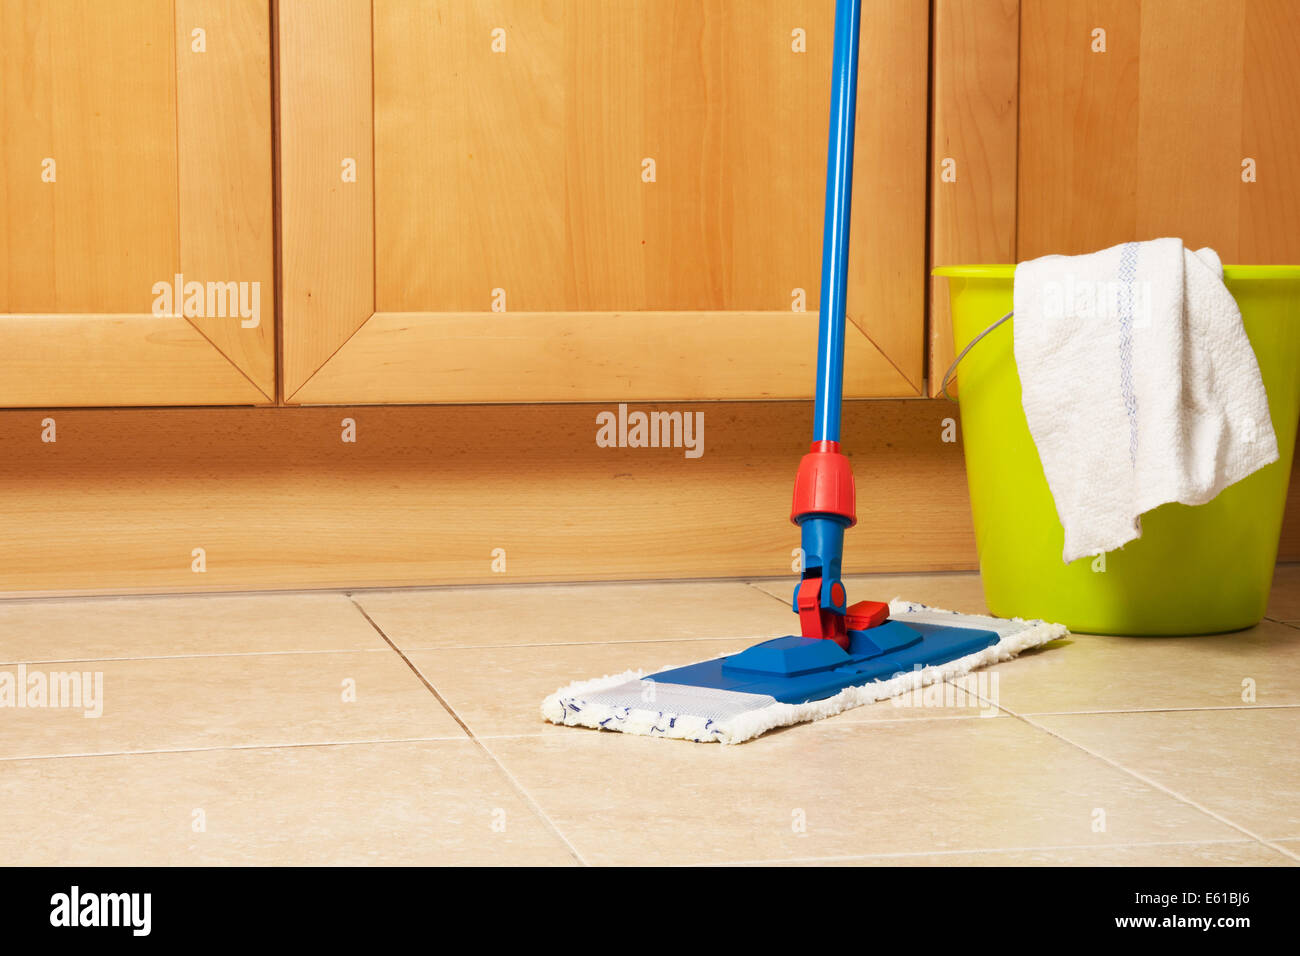 House cleaning with the mop - Stock Image